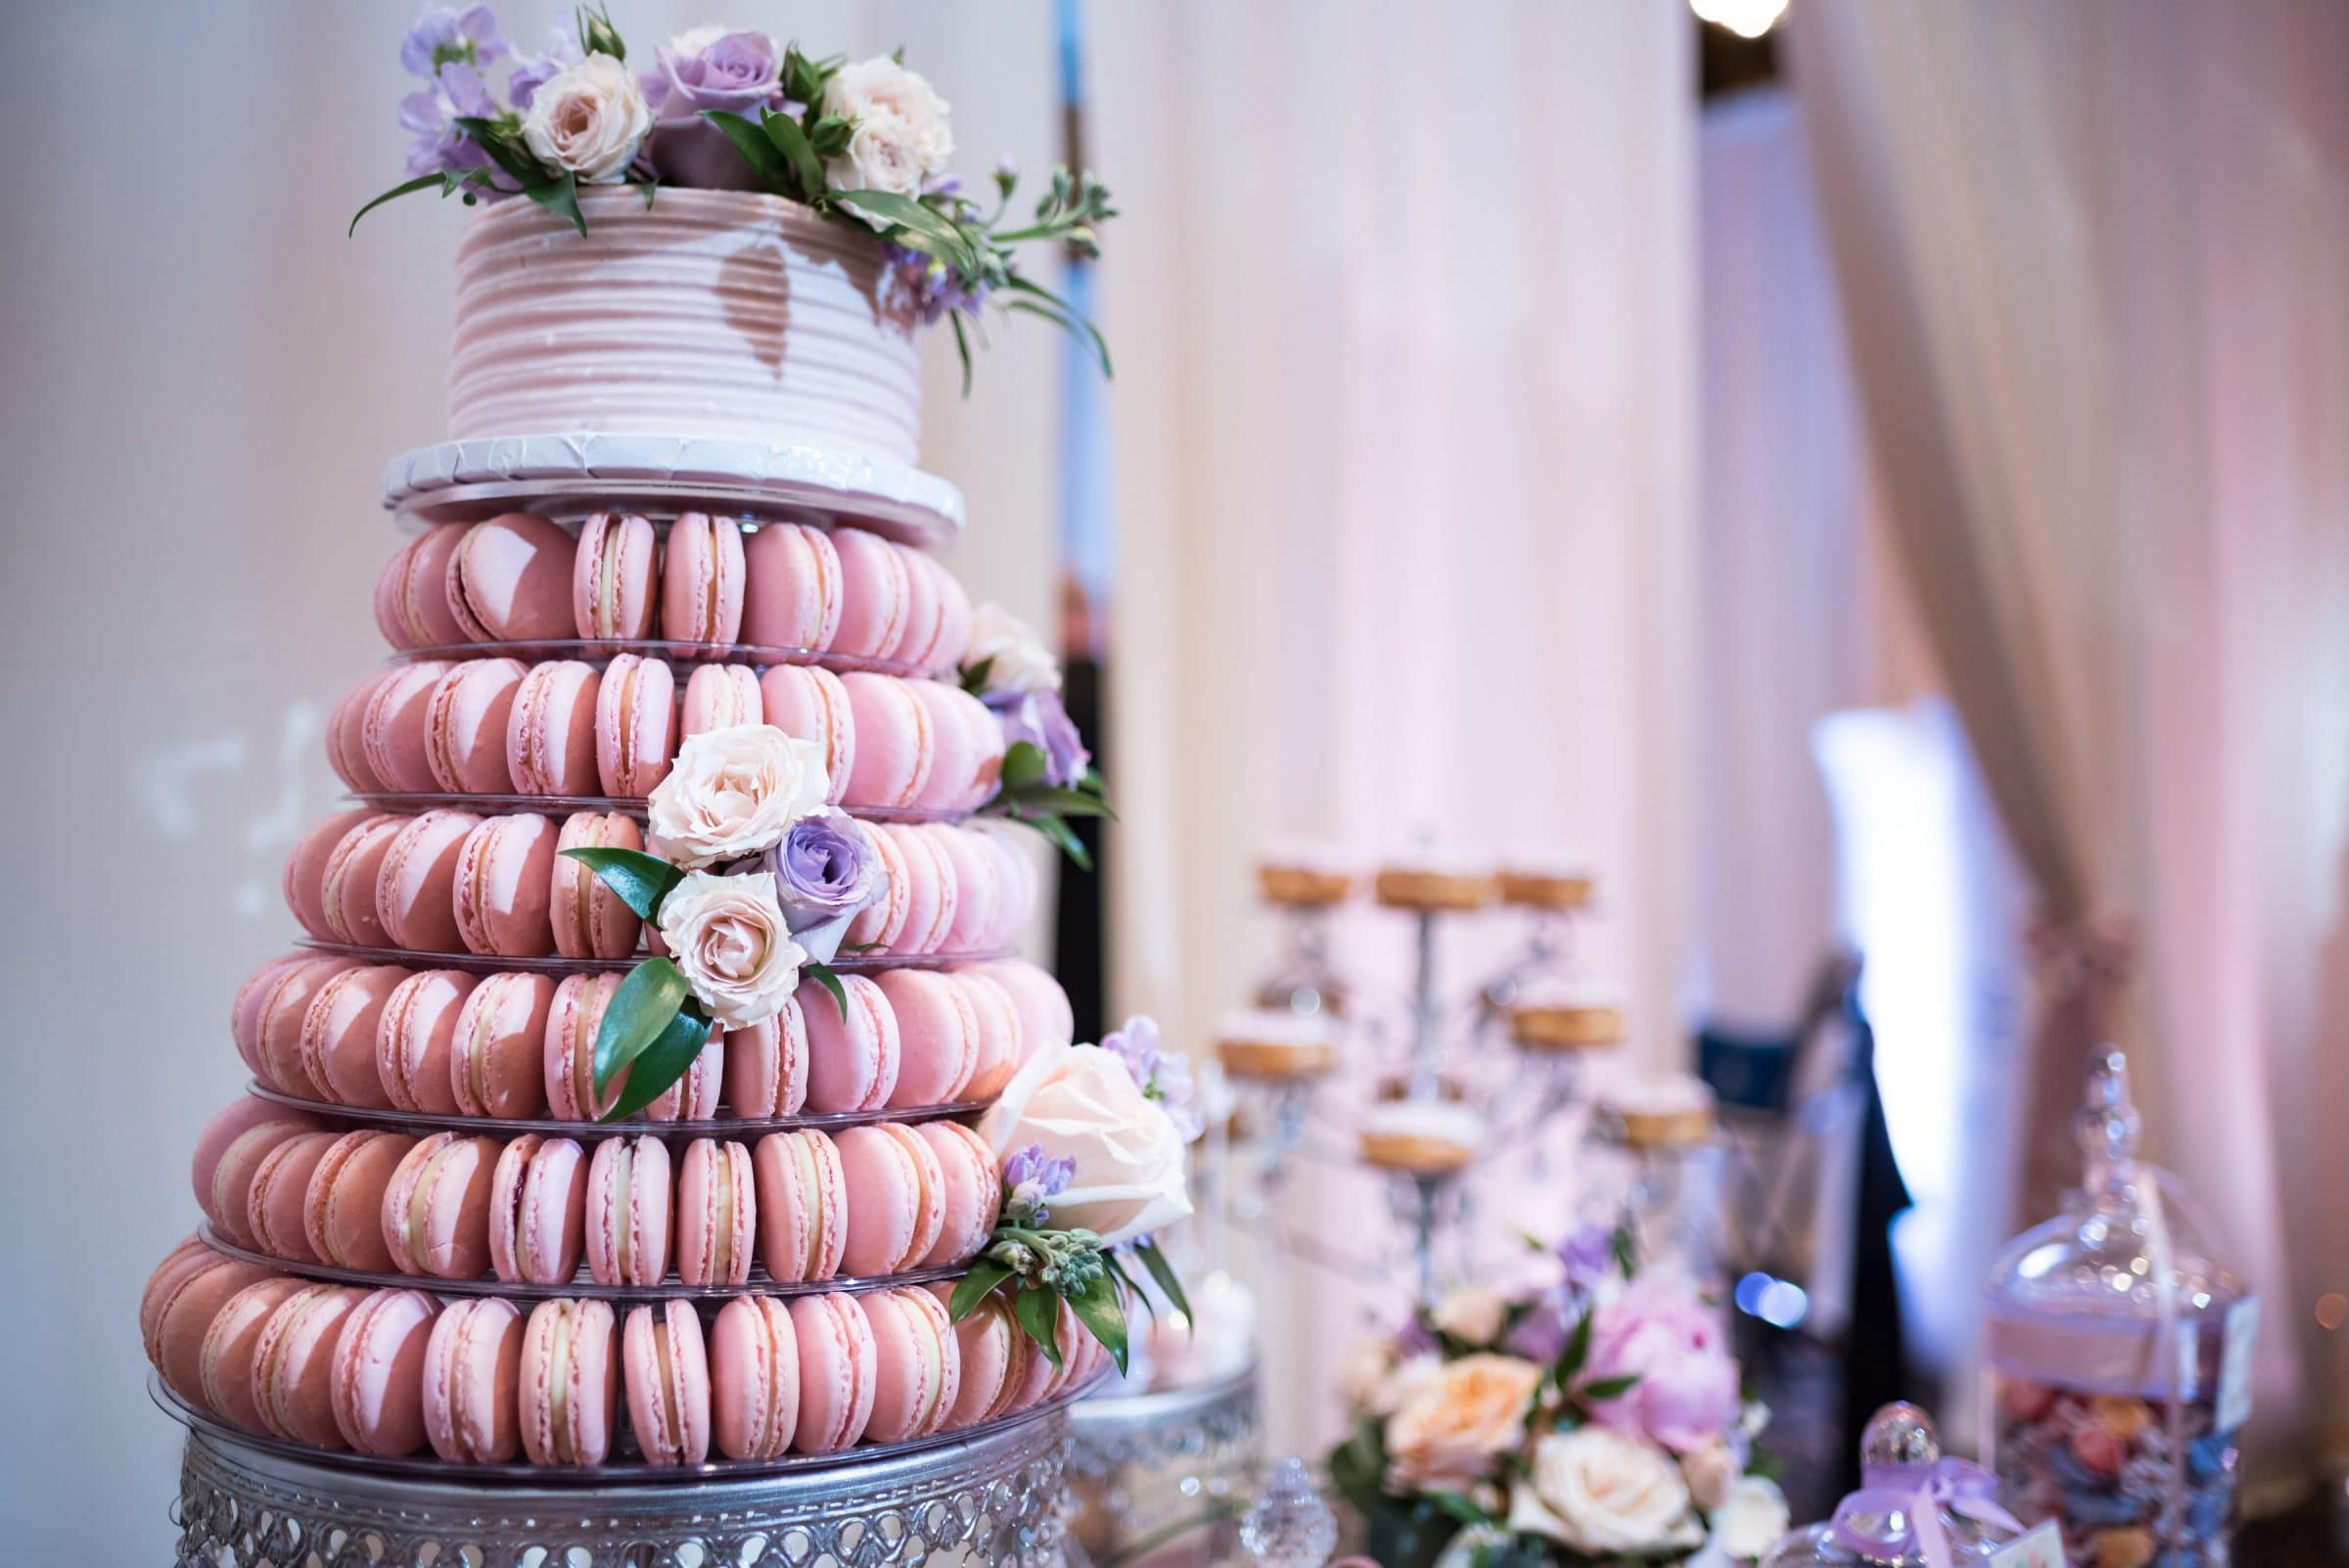 Macaroon with wedding cake for venue tour